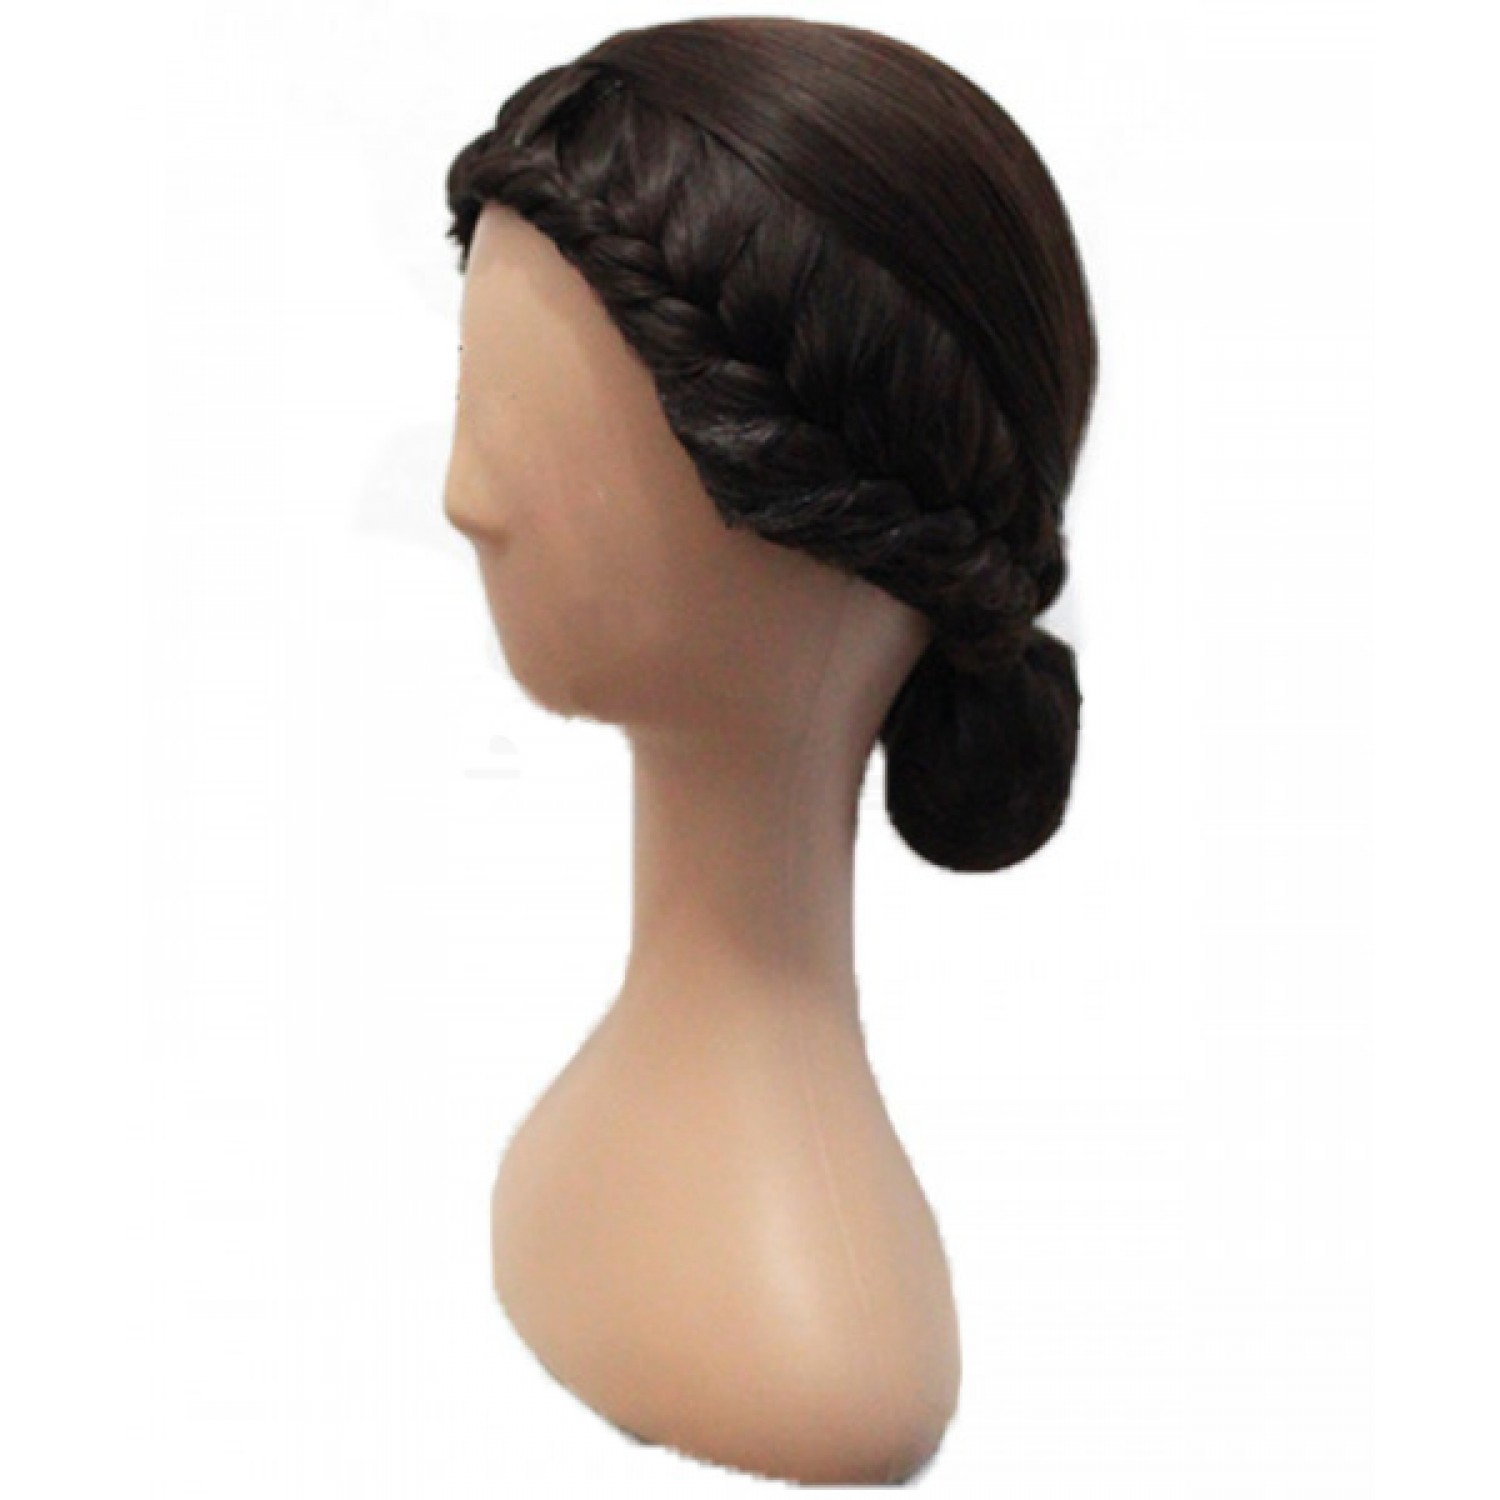 Assassin's Creed Evie Frye Cosplay Wig